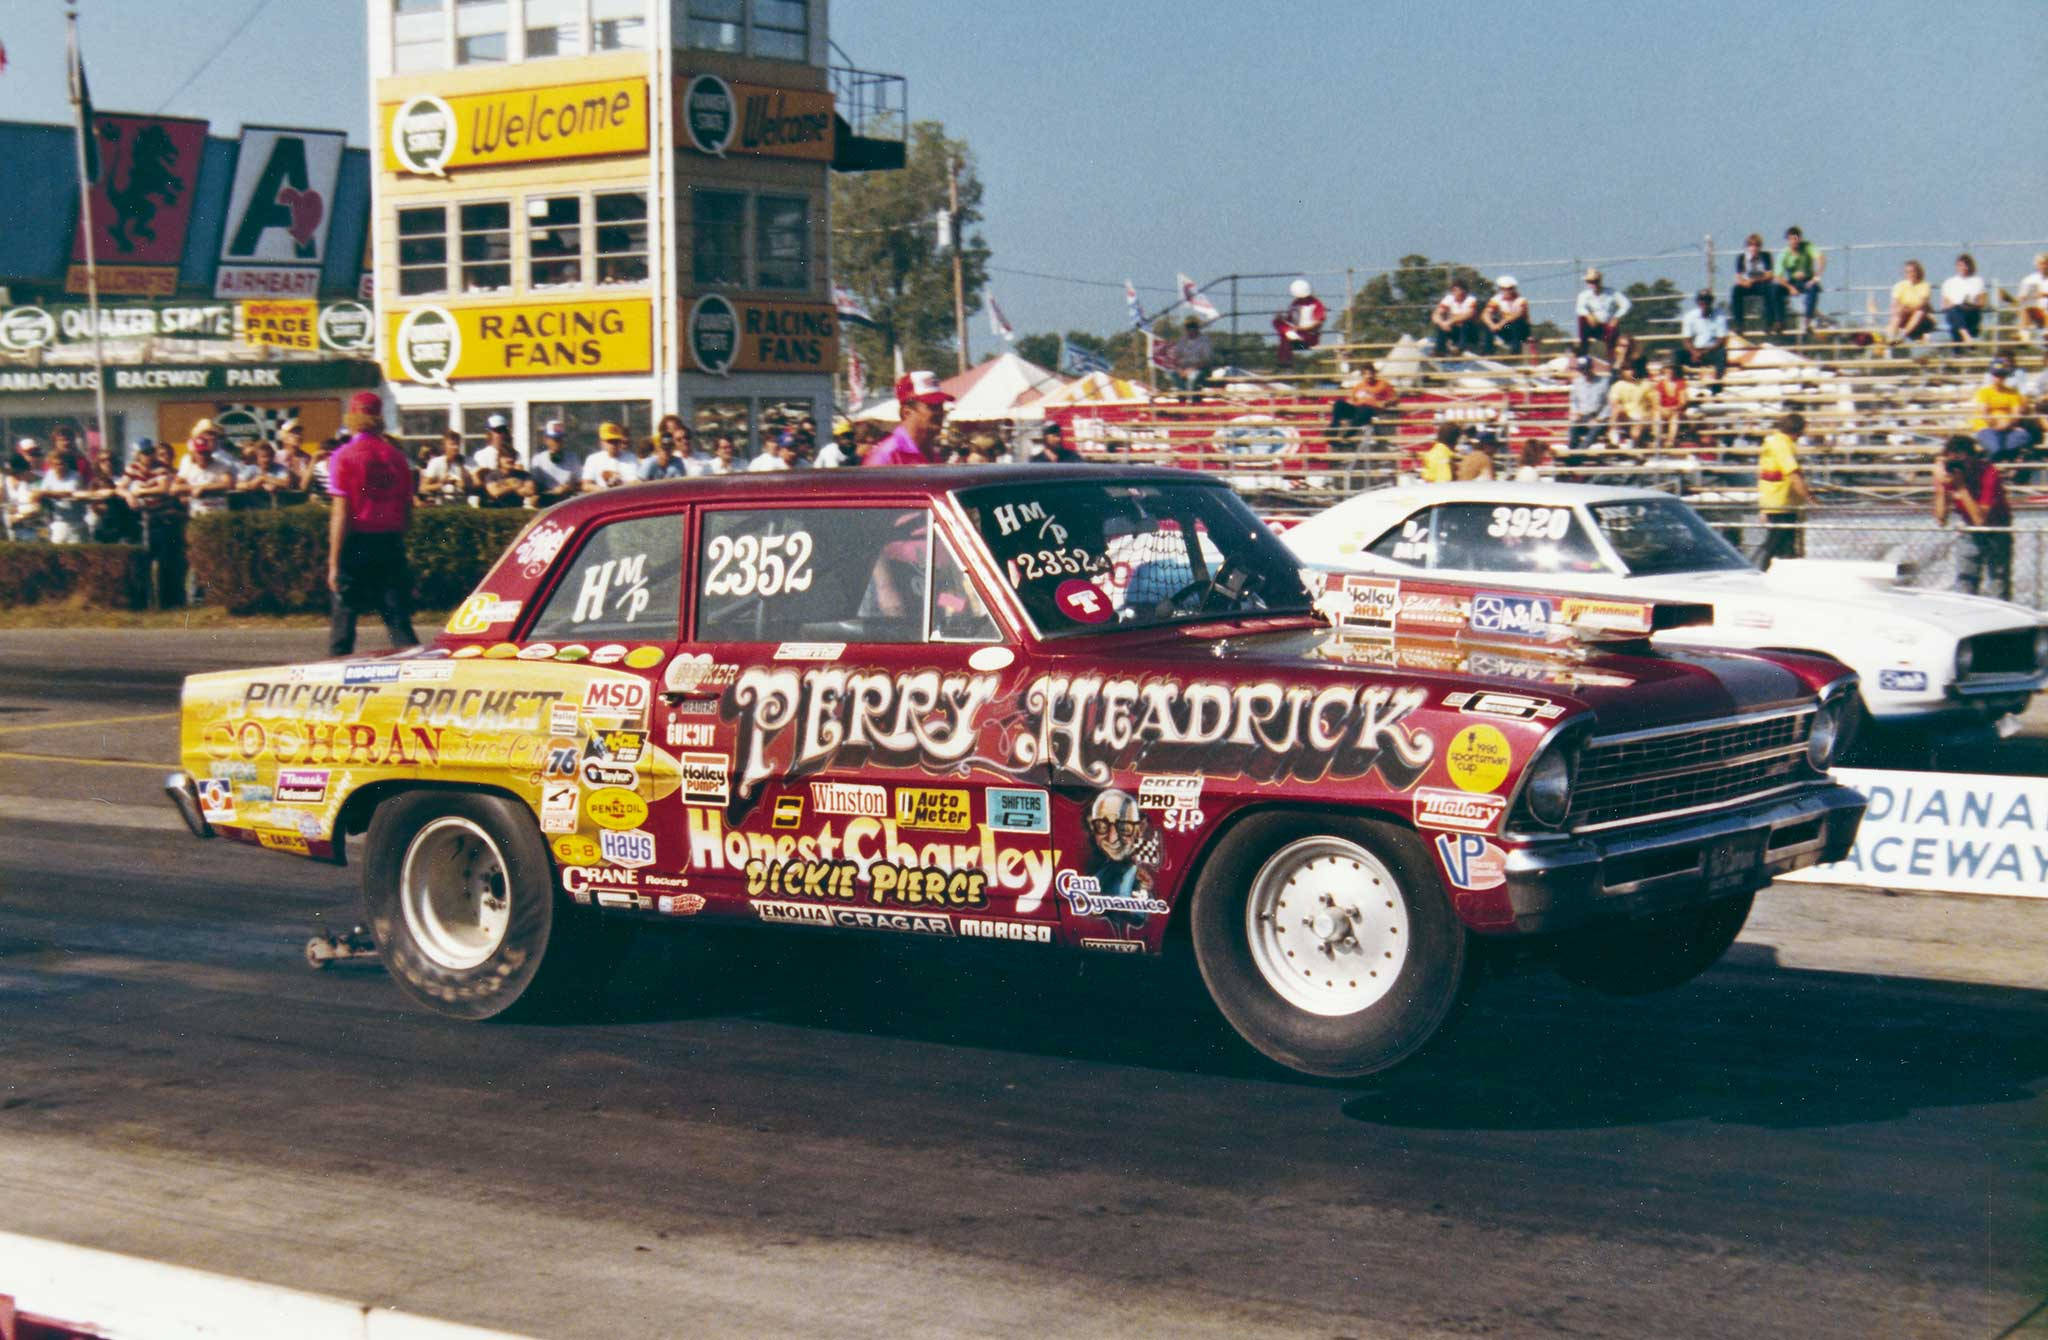 Driver Cotton Perry and engine builder Jim Hedrick hailed from Chattanooga, Tennessee. Their Chevy inline-six-powered Chevy II Pocket Rocket was a regular Nationals class winner, record-holder, and big-time threat to win Modified Eliminator on the divisional and national level.